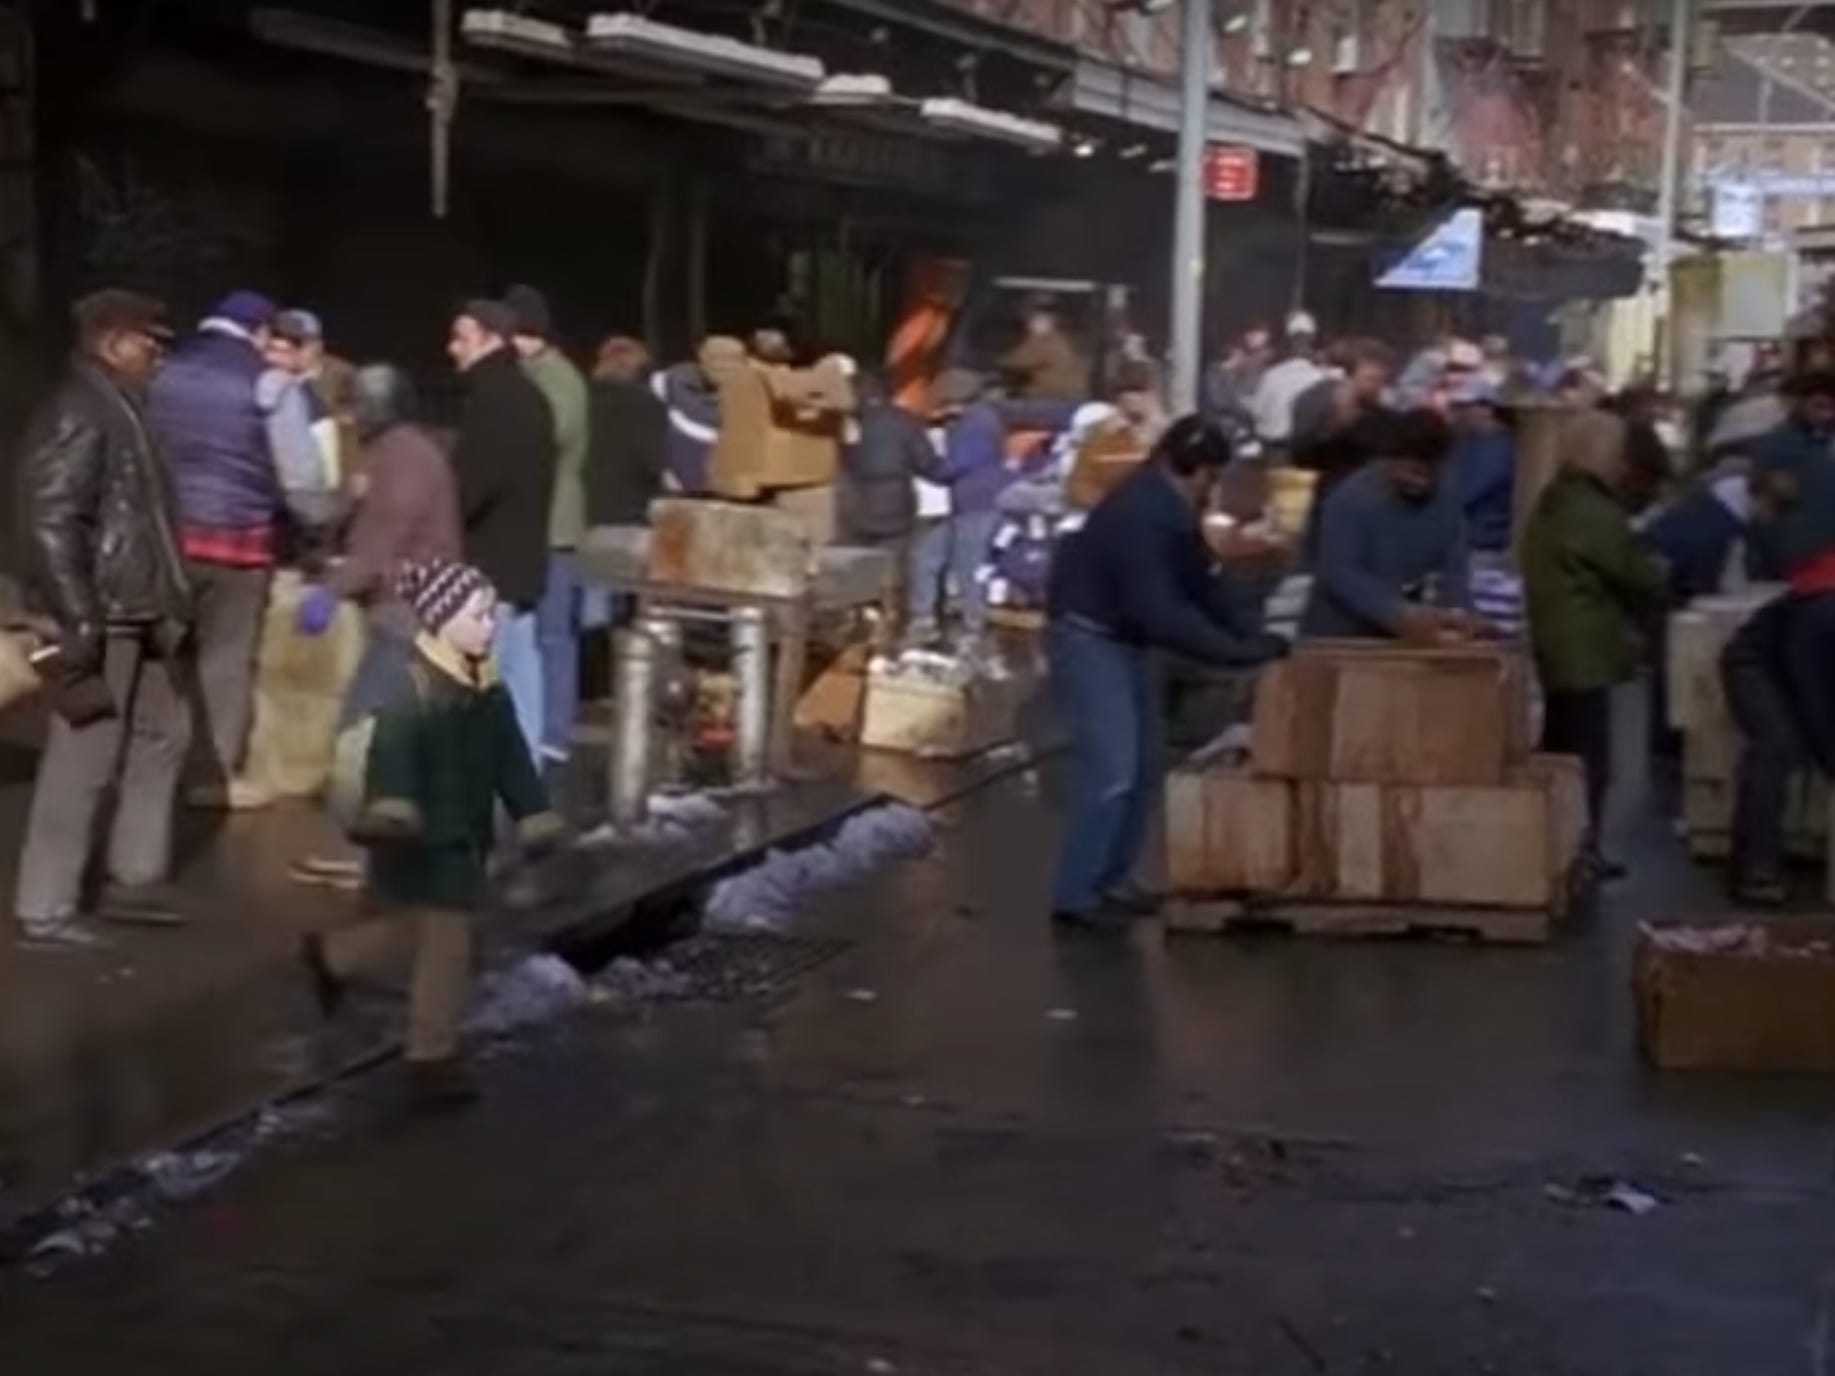 Slide 18 of 36: This is Harry and Marv's entrance to the movie. The two have escaped from prison and are spotted in the back of a fish delivery truck.They've traveled to New York City to steal money.The fish mark is portrayed as bustling place in the movie.